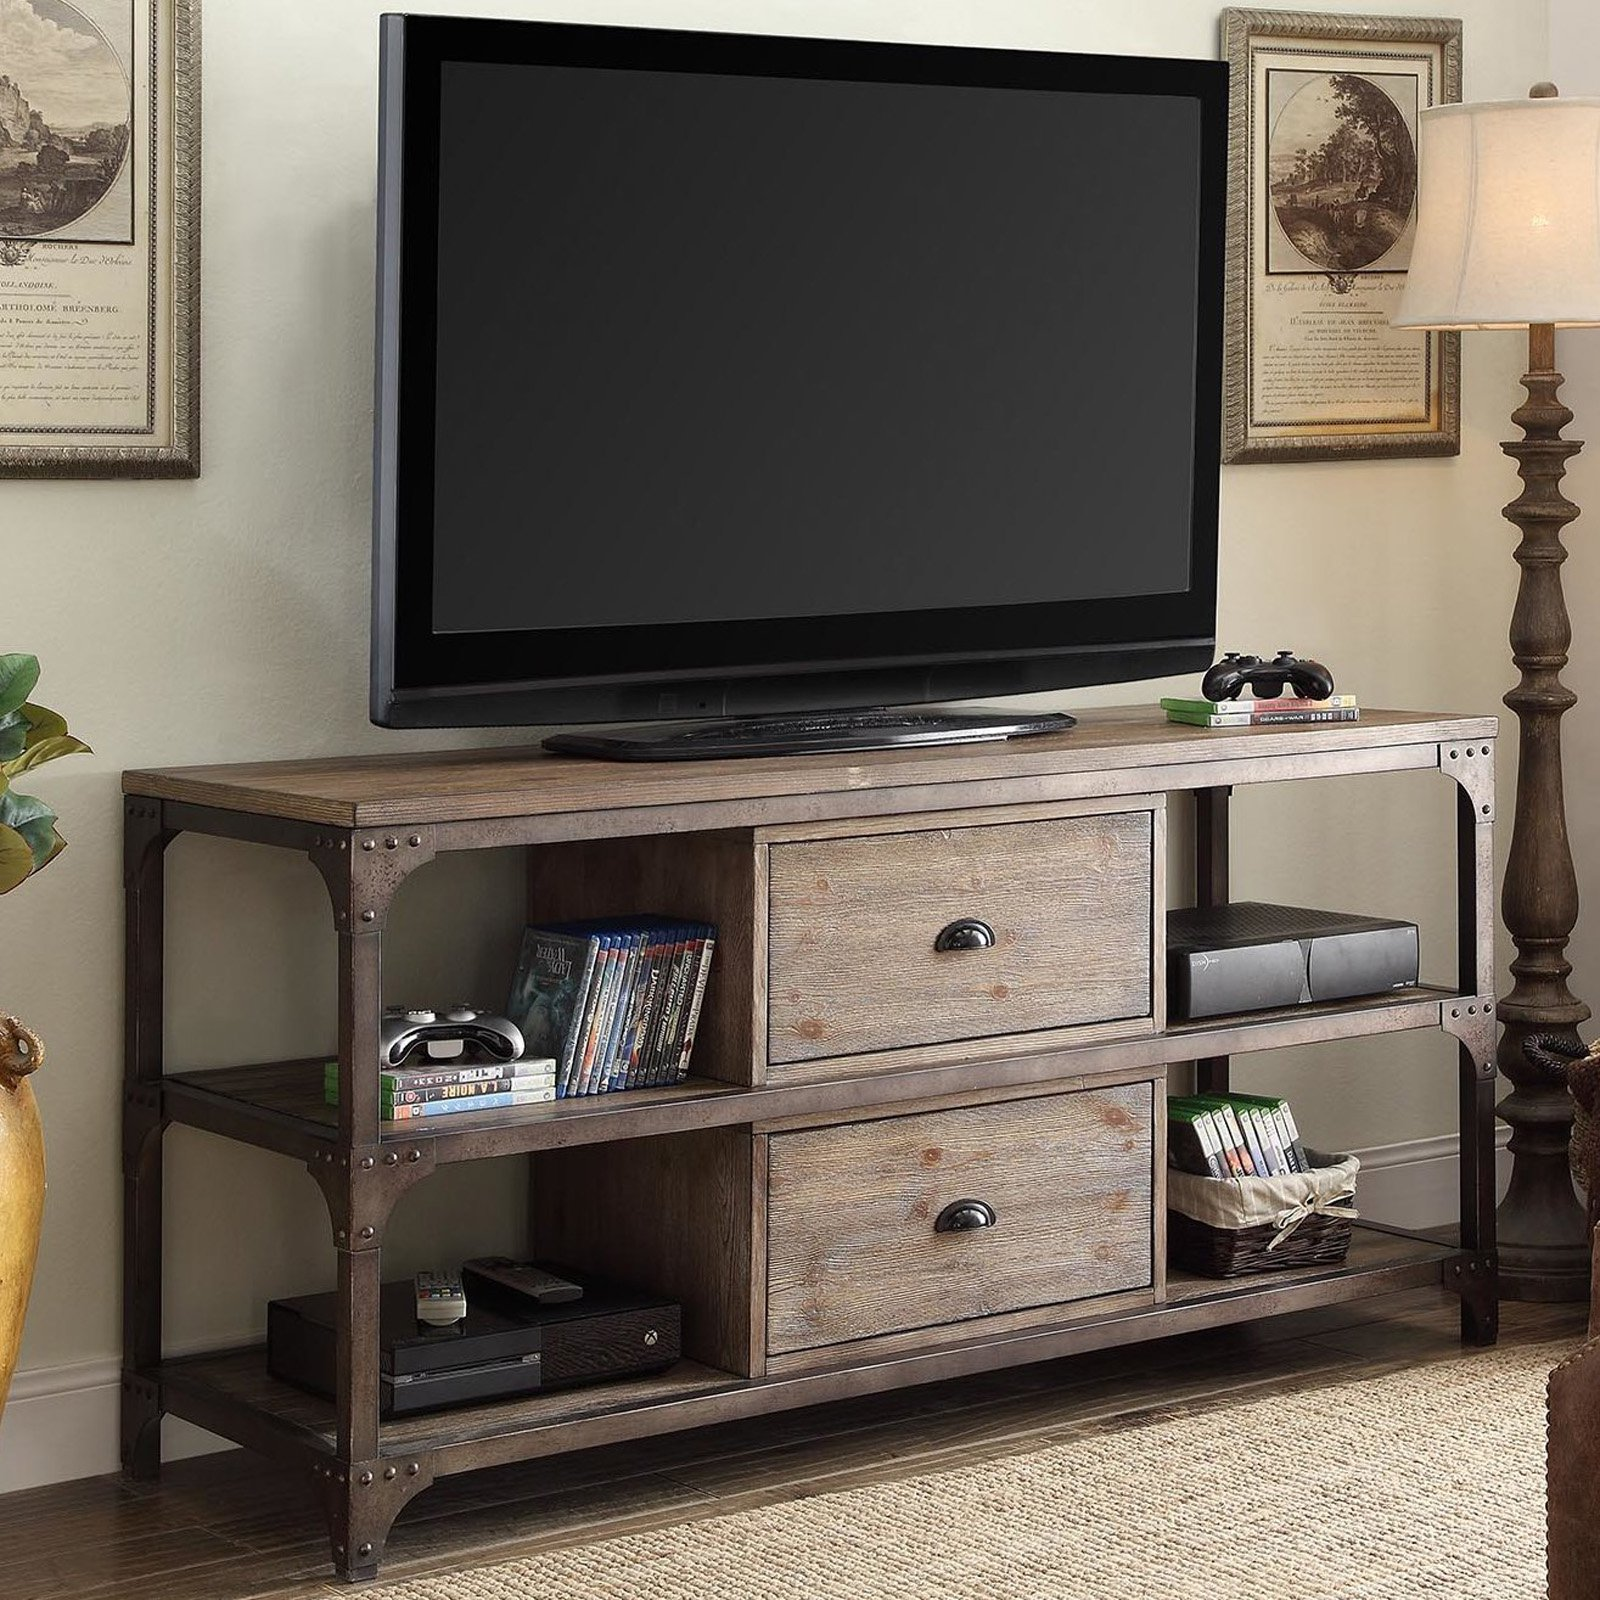 """Acme Gorden TV Stand for TVs up to 55"""", Weathered Oak and Antique Silver (Box 2 of 2)"""